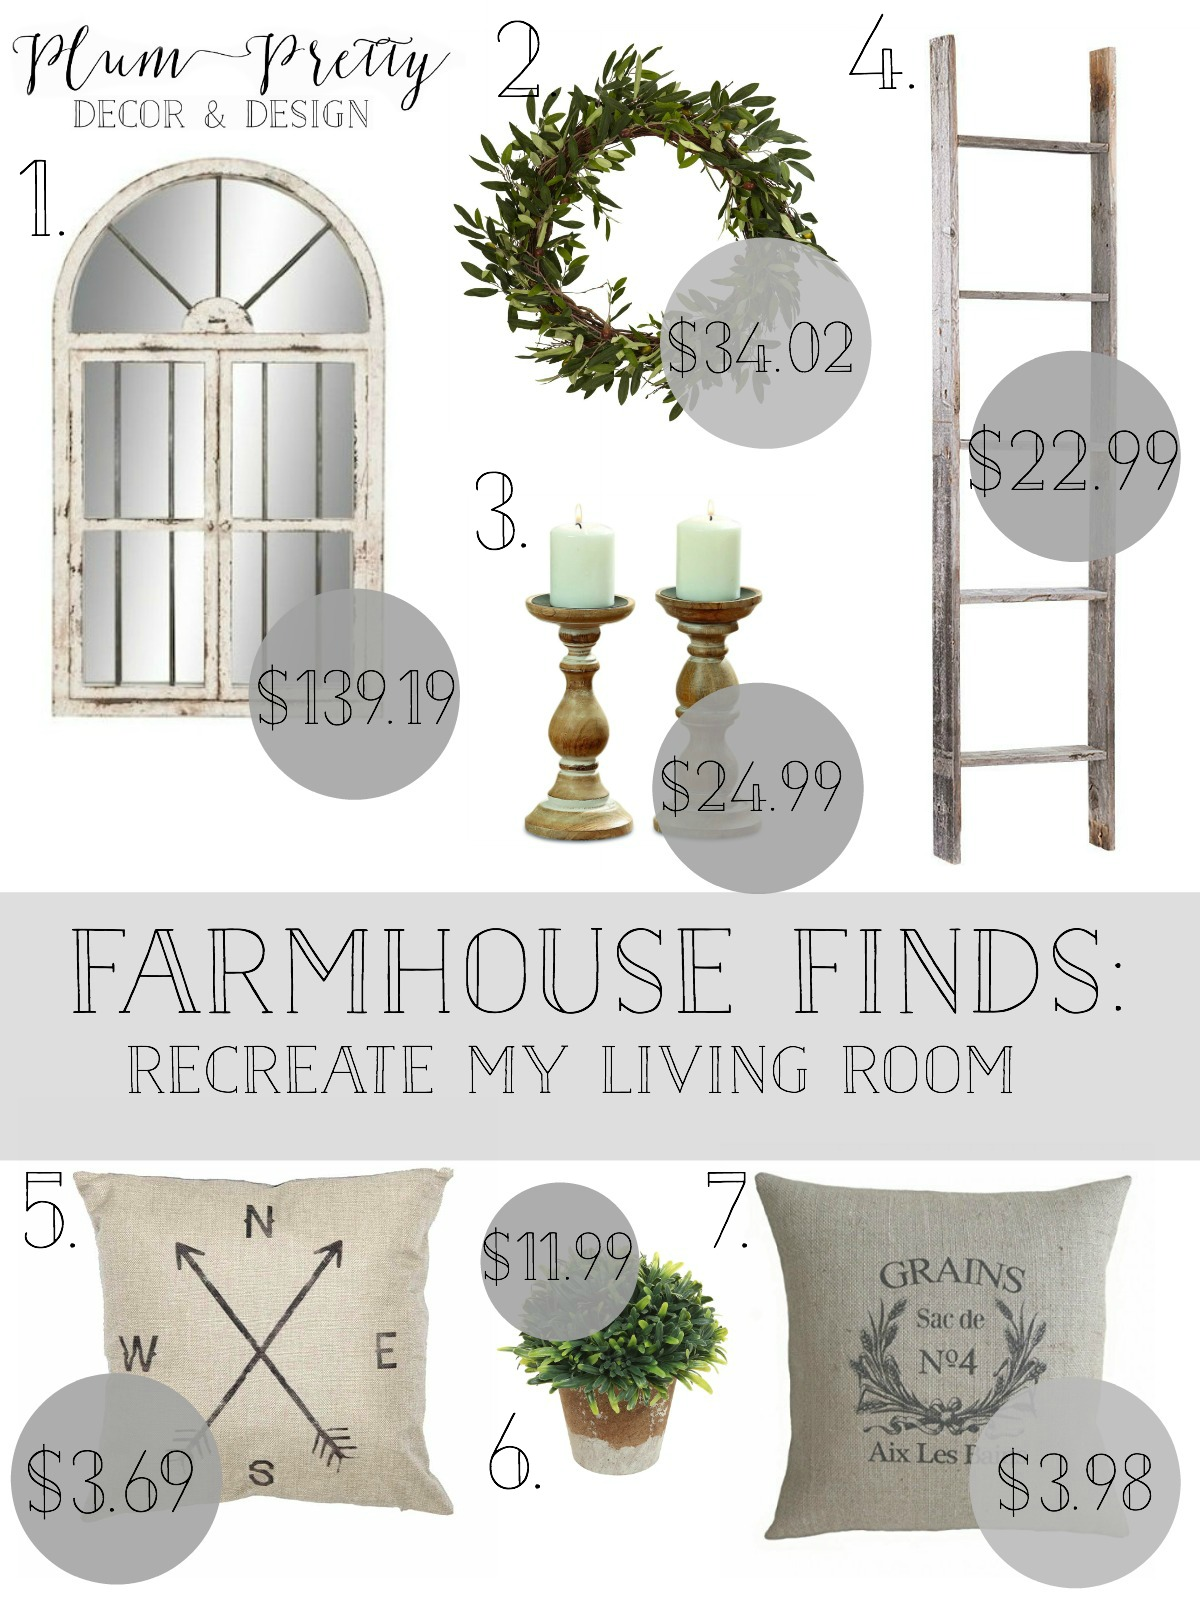 Friday Farmhouse- Living Room- Recreate Plum Pretty Decor and Designs Living Room with These Affordable Farmhouse Finds.